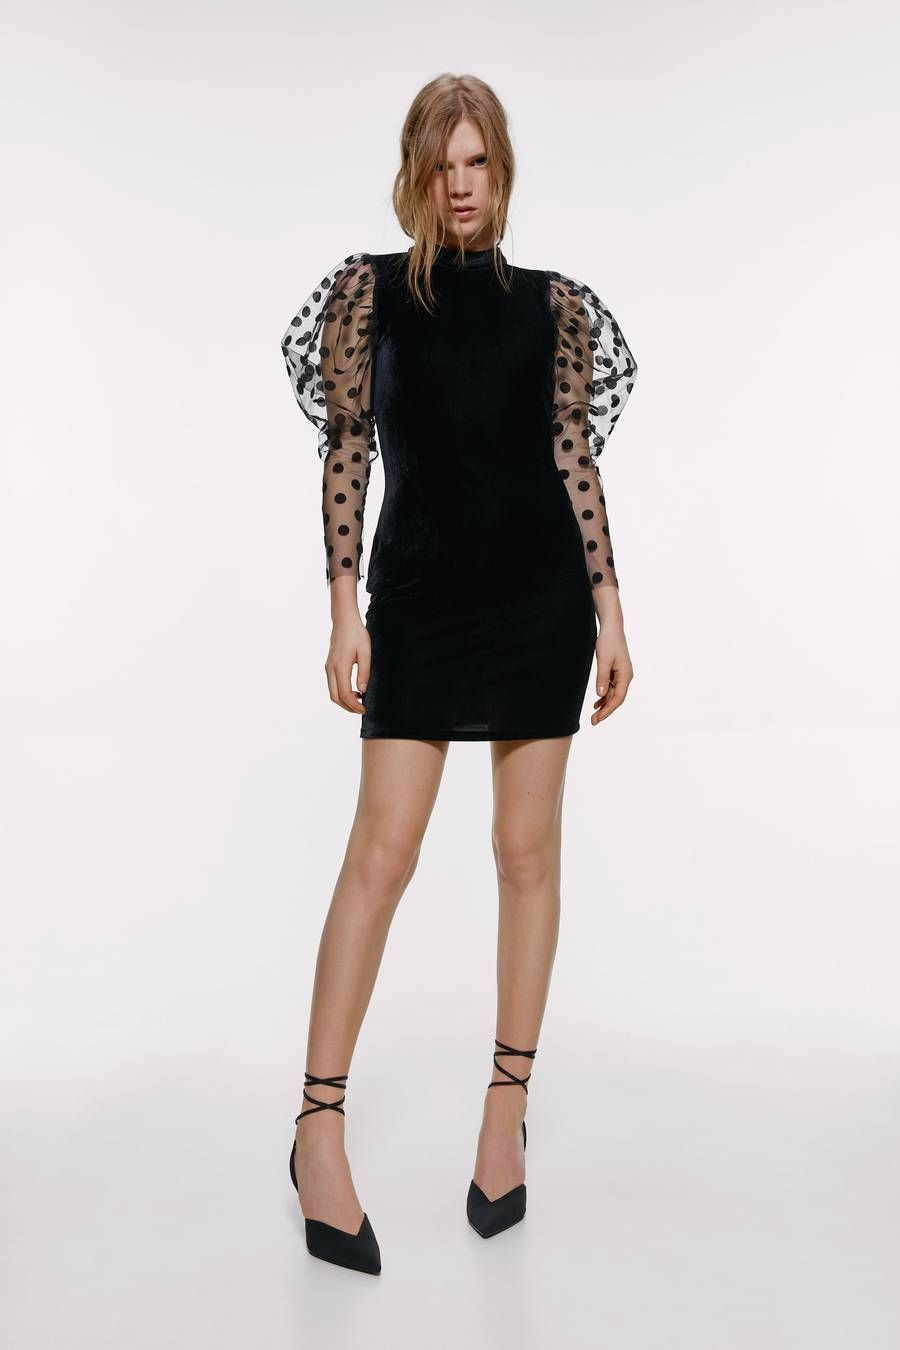 They Re Here The Best Zara Party Dresses Of 2019 Phong Cach Thời Trang Vay Zara